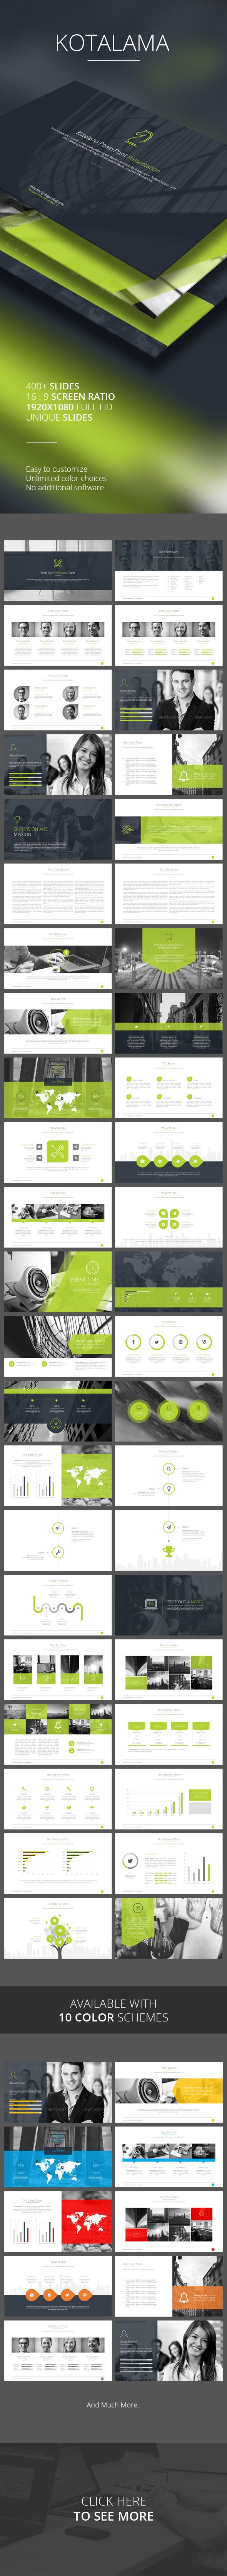 Kotalama PowerPoint Template #design #slides Download: http://graphicriver.net/item/kotalama-powerpoint-template/12647310?ref=ksioks